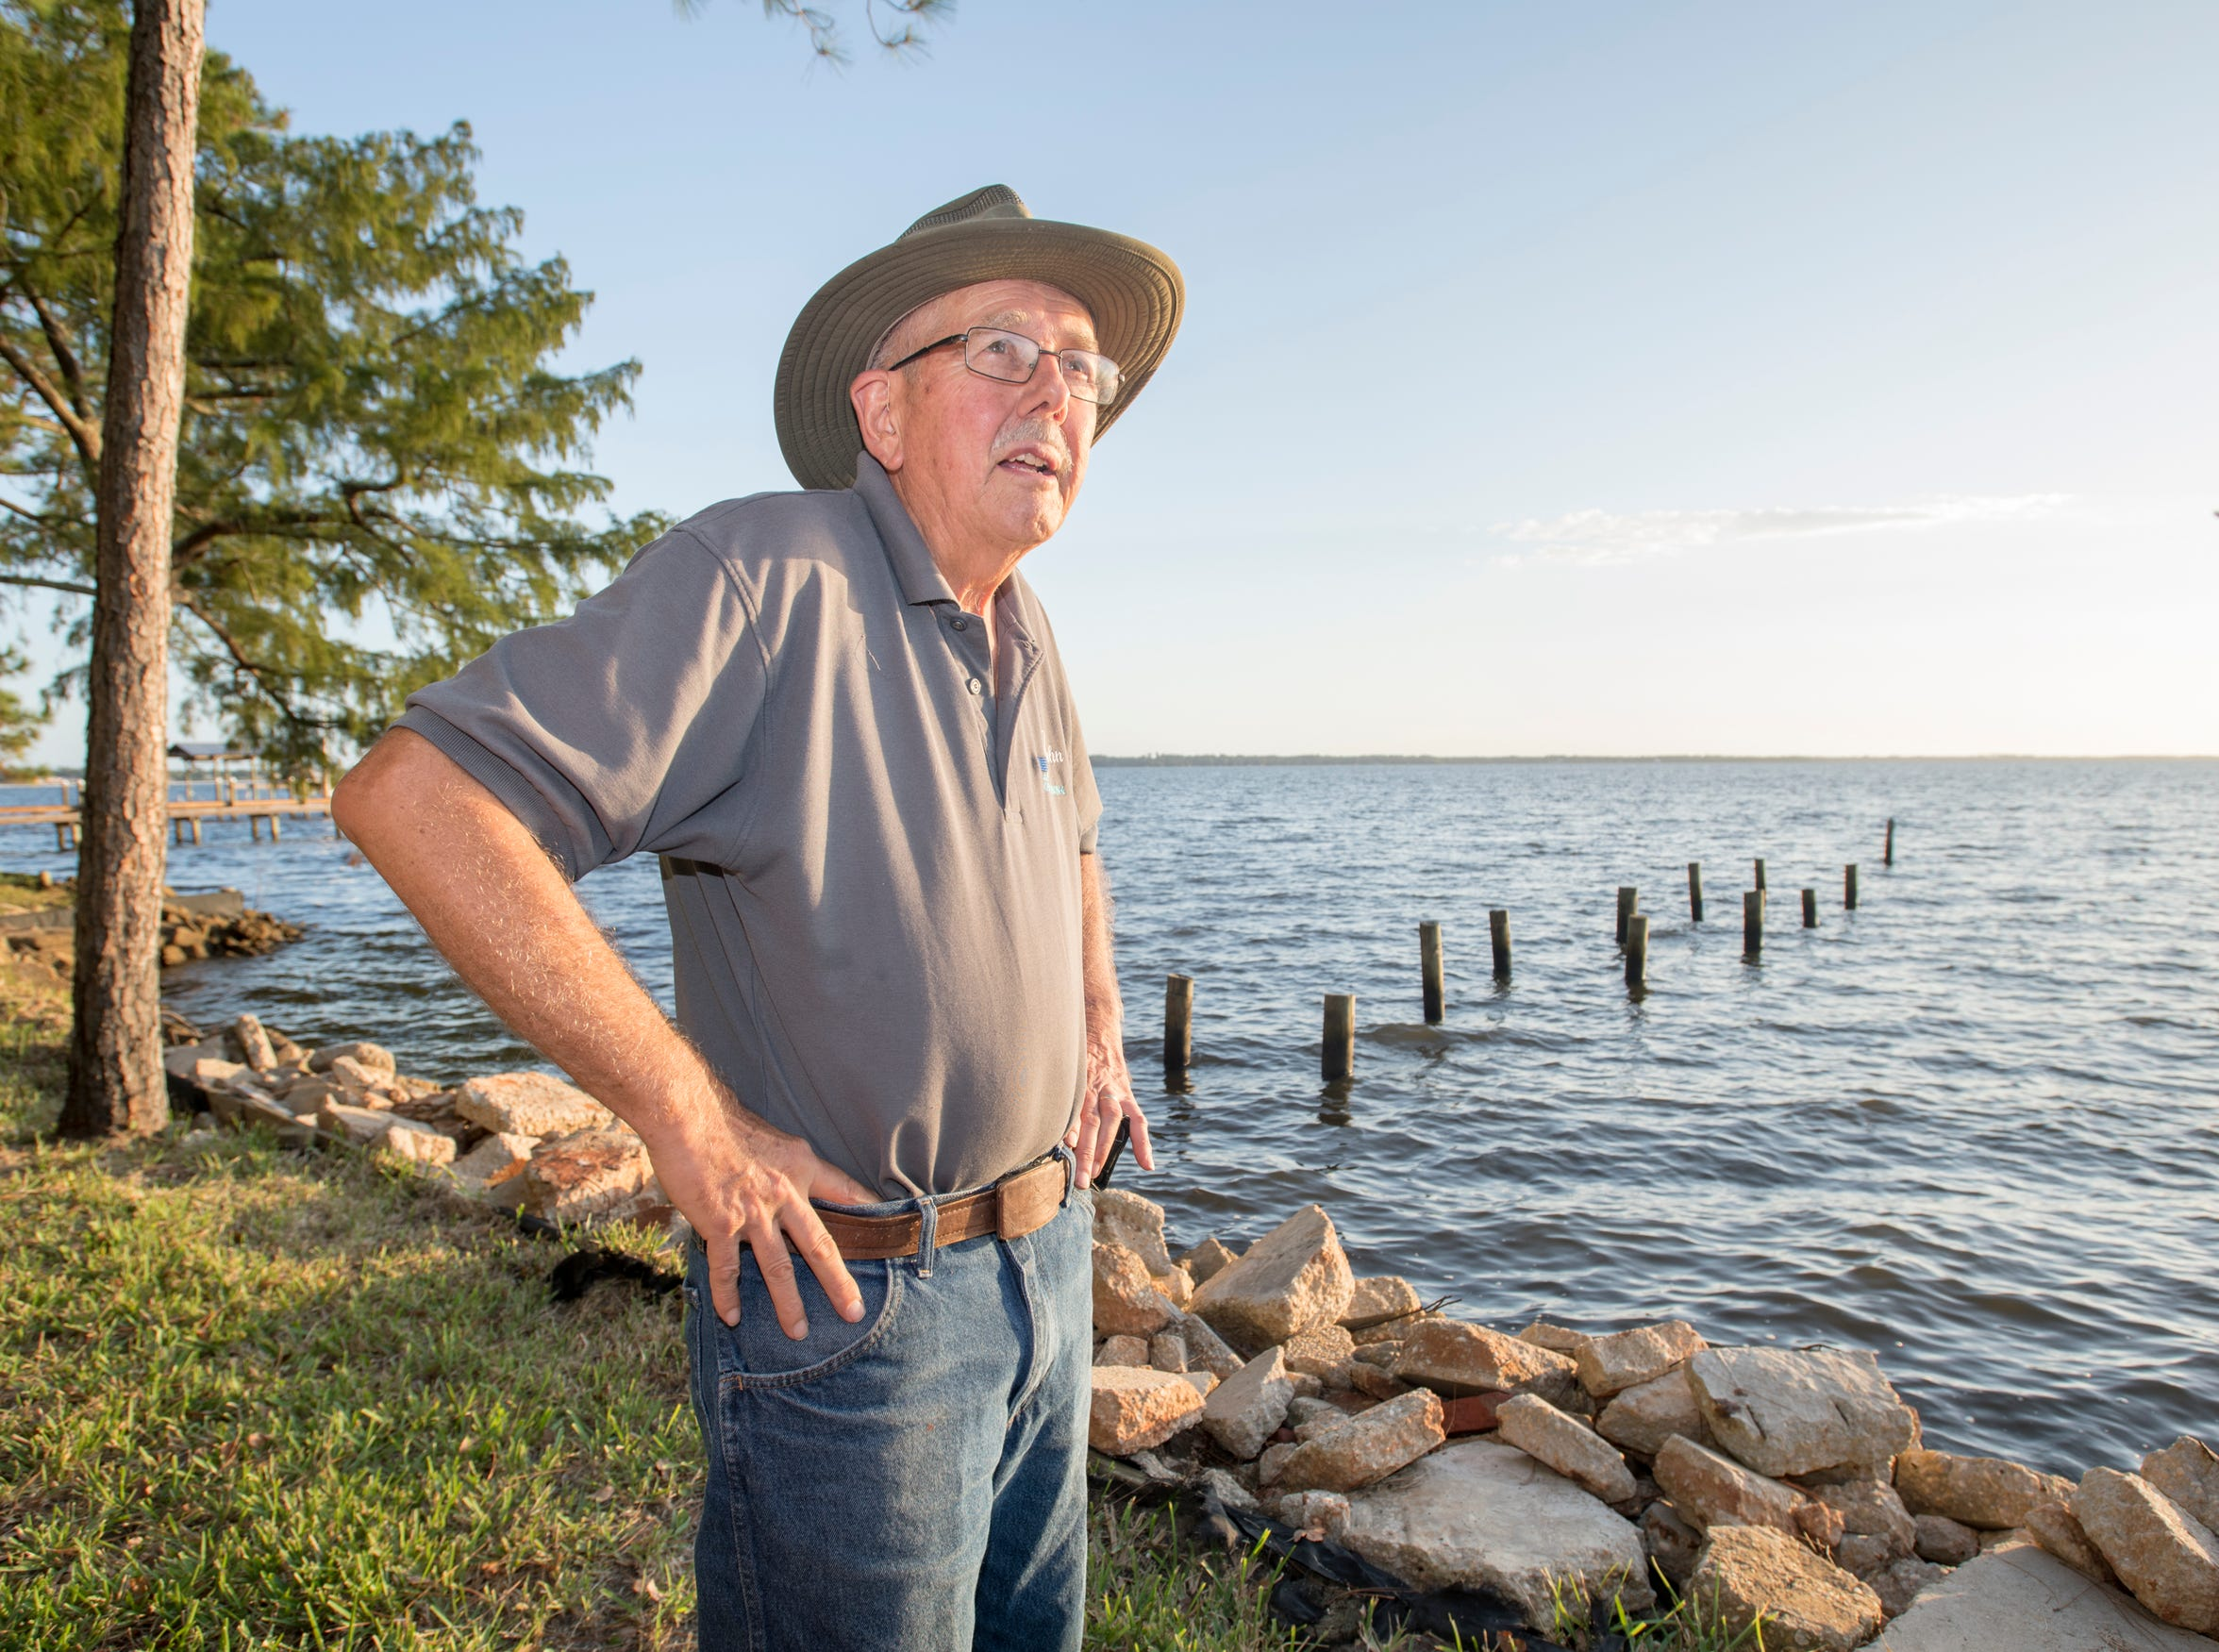 Ramsey Beach community resident John Schleich talks about the water quality of Perdido Bay in Pensacola on Wednesday, Oct. 9, 2019.